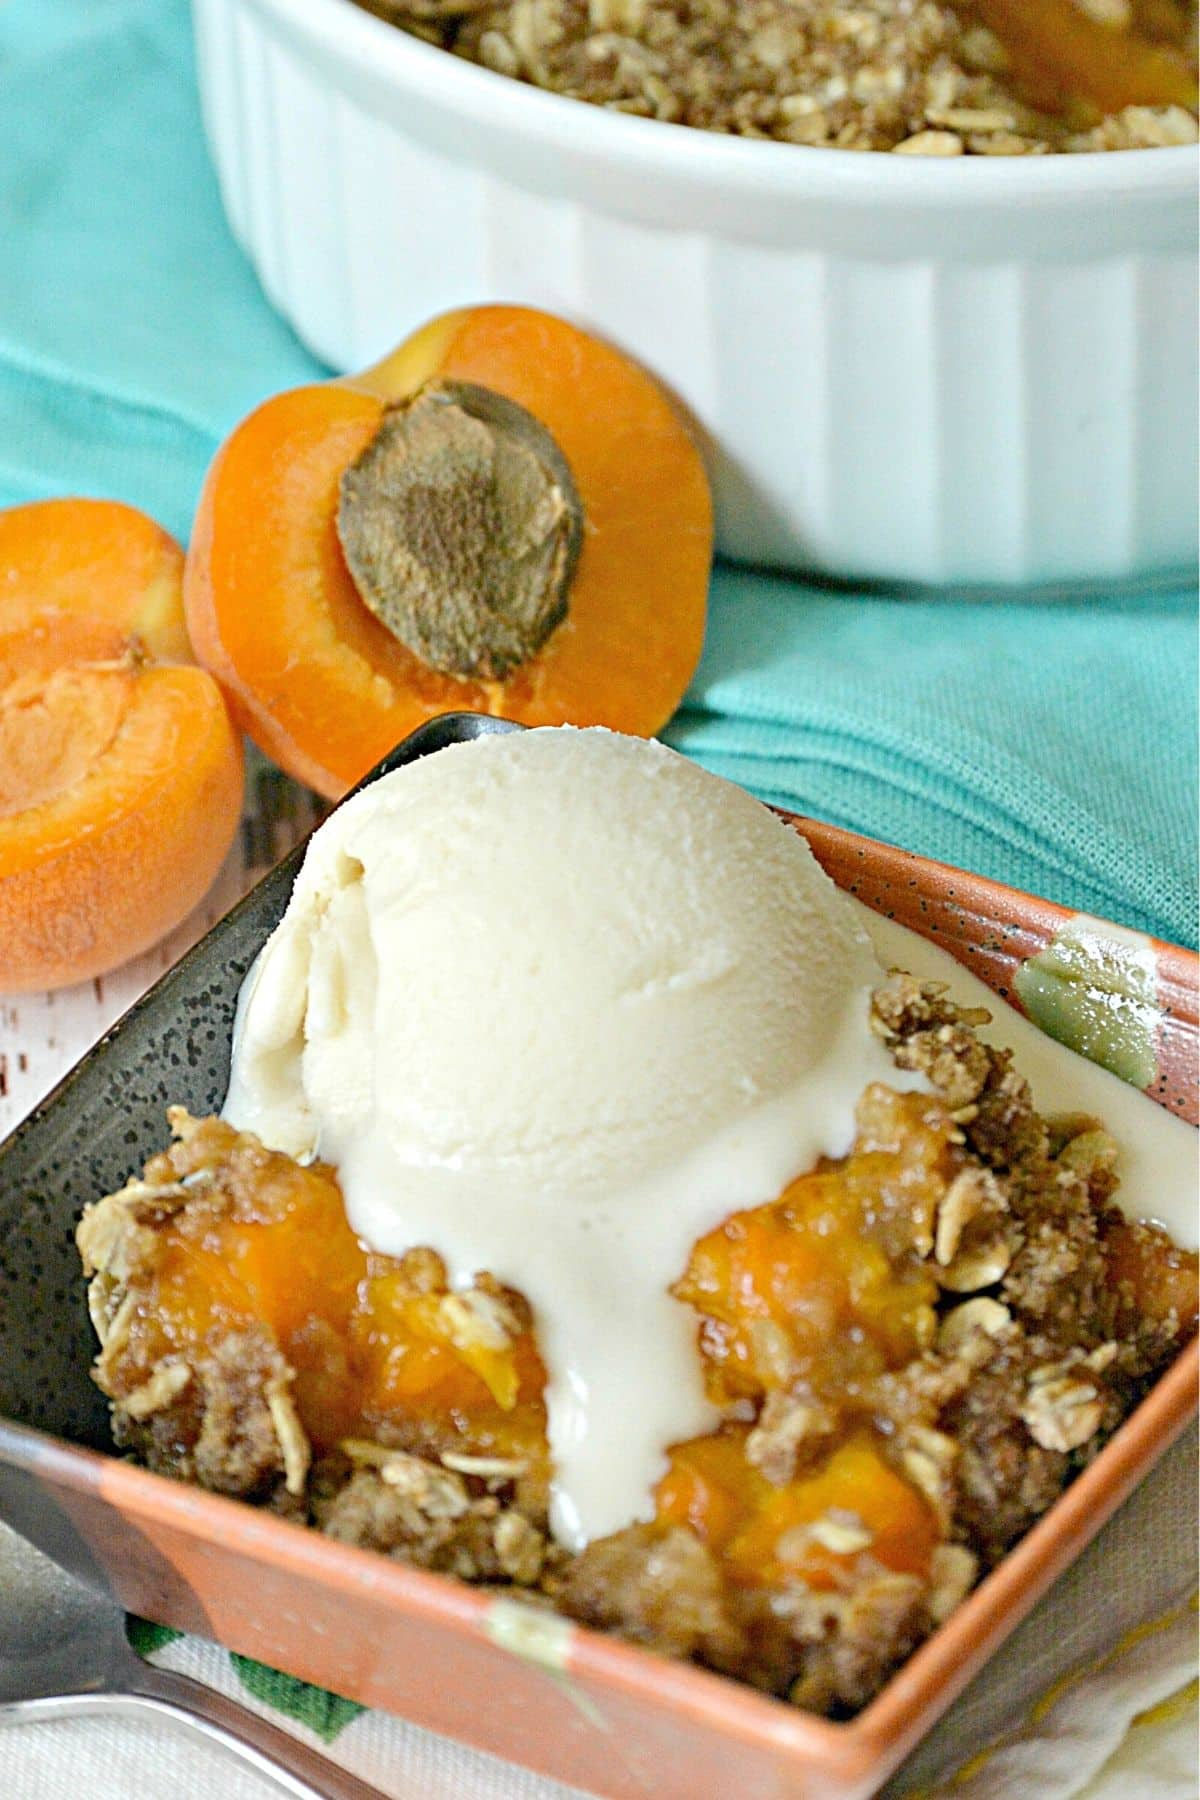 Serving of baked apricot dessert topped with scoop of vanilla ice cream